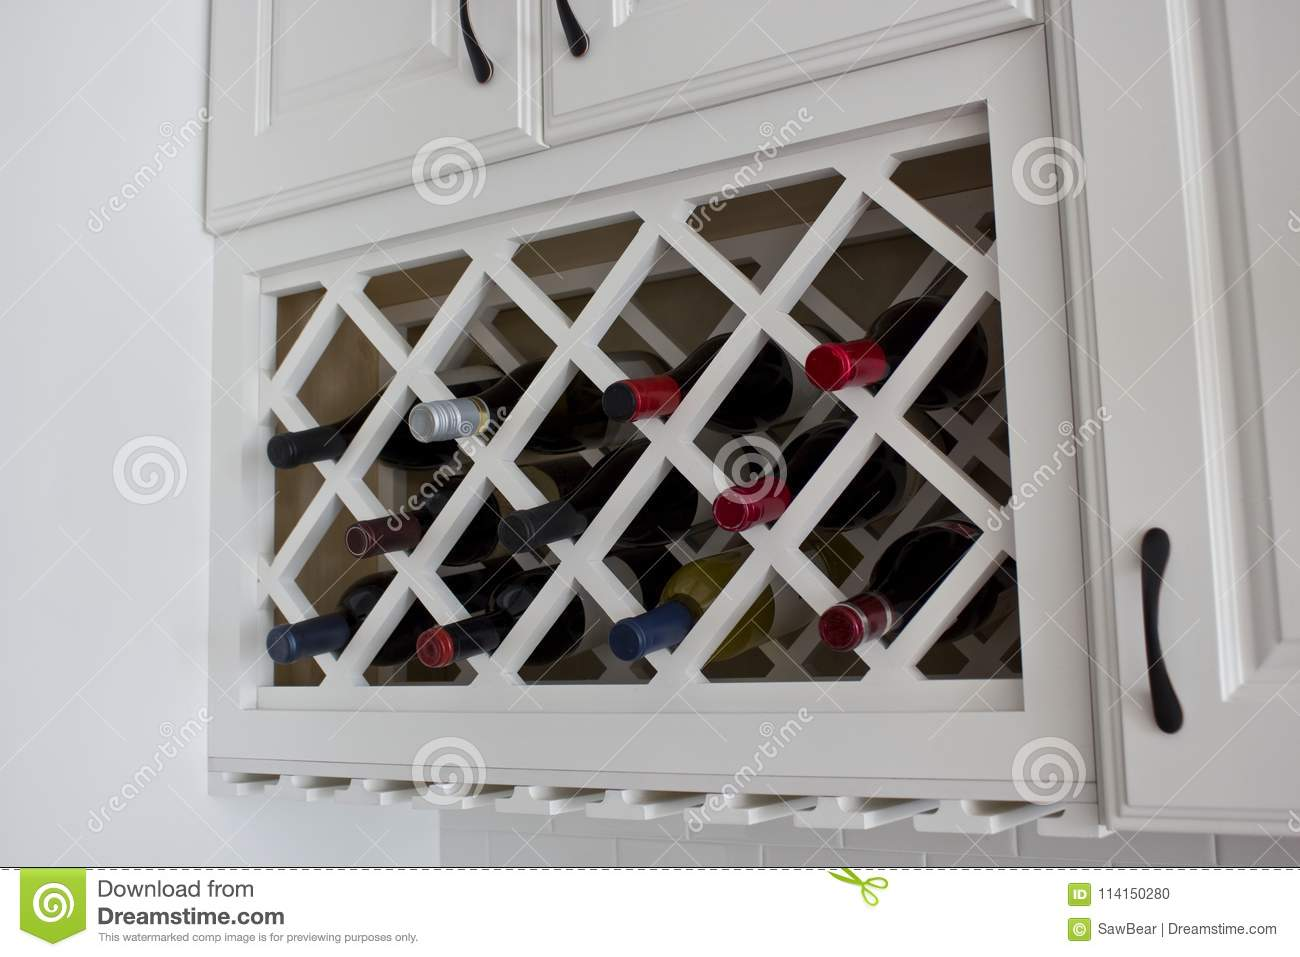 Wine Racks In Kitchen Cabinets White Built In Wine Rack Cabinet Stock Photo Image Of Counter